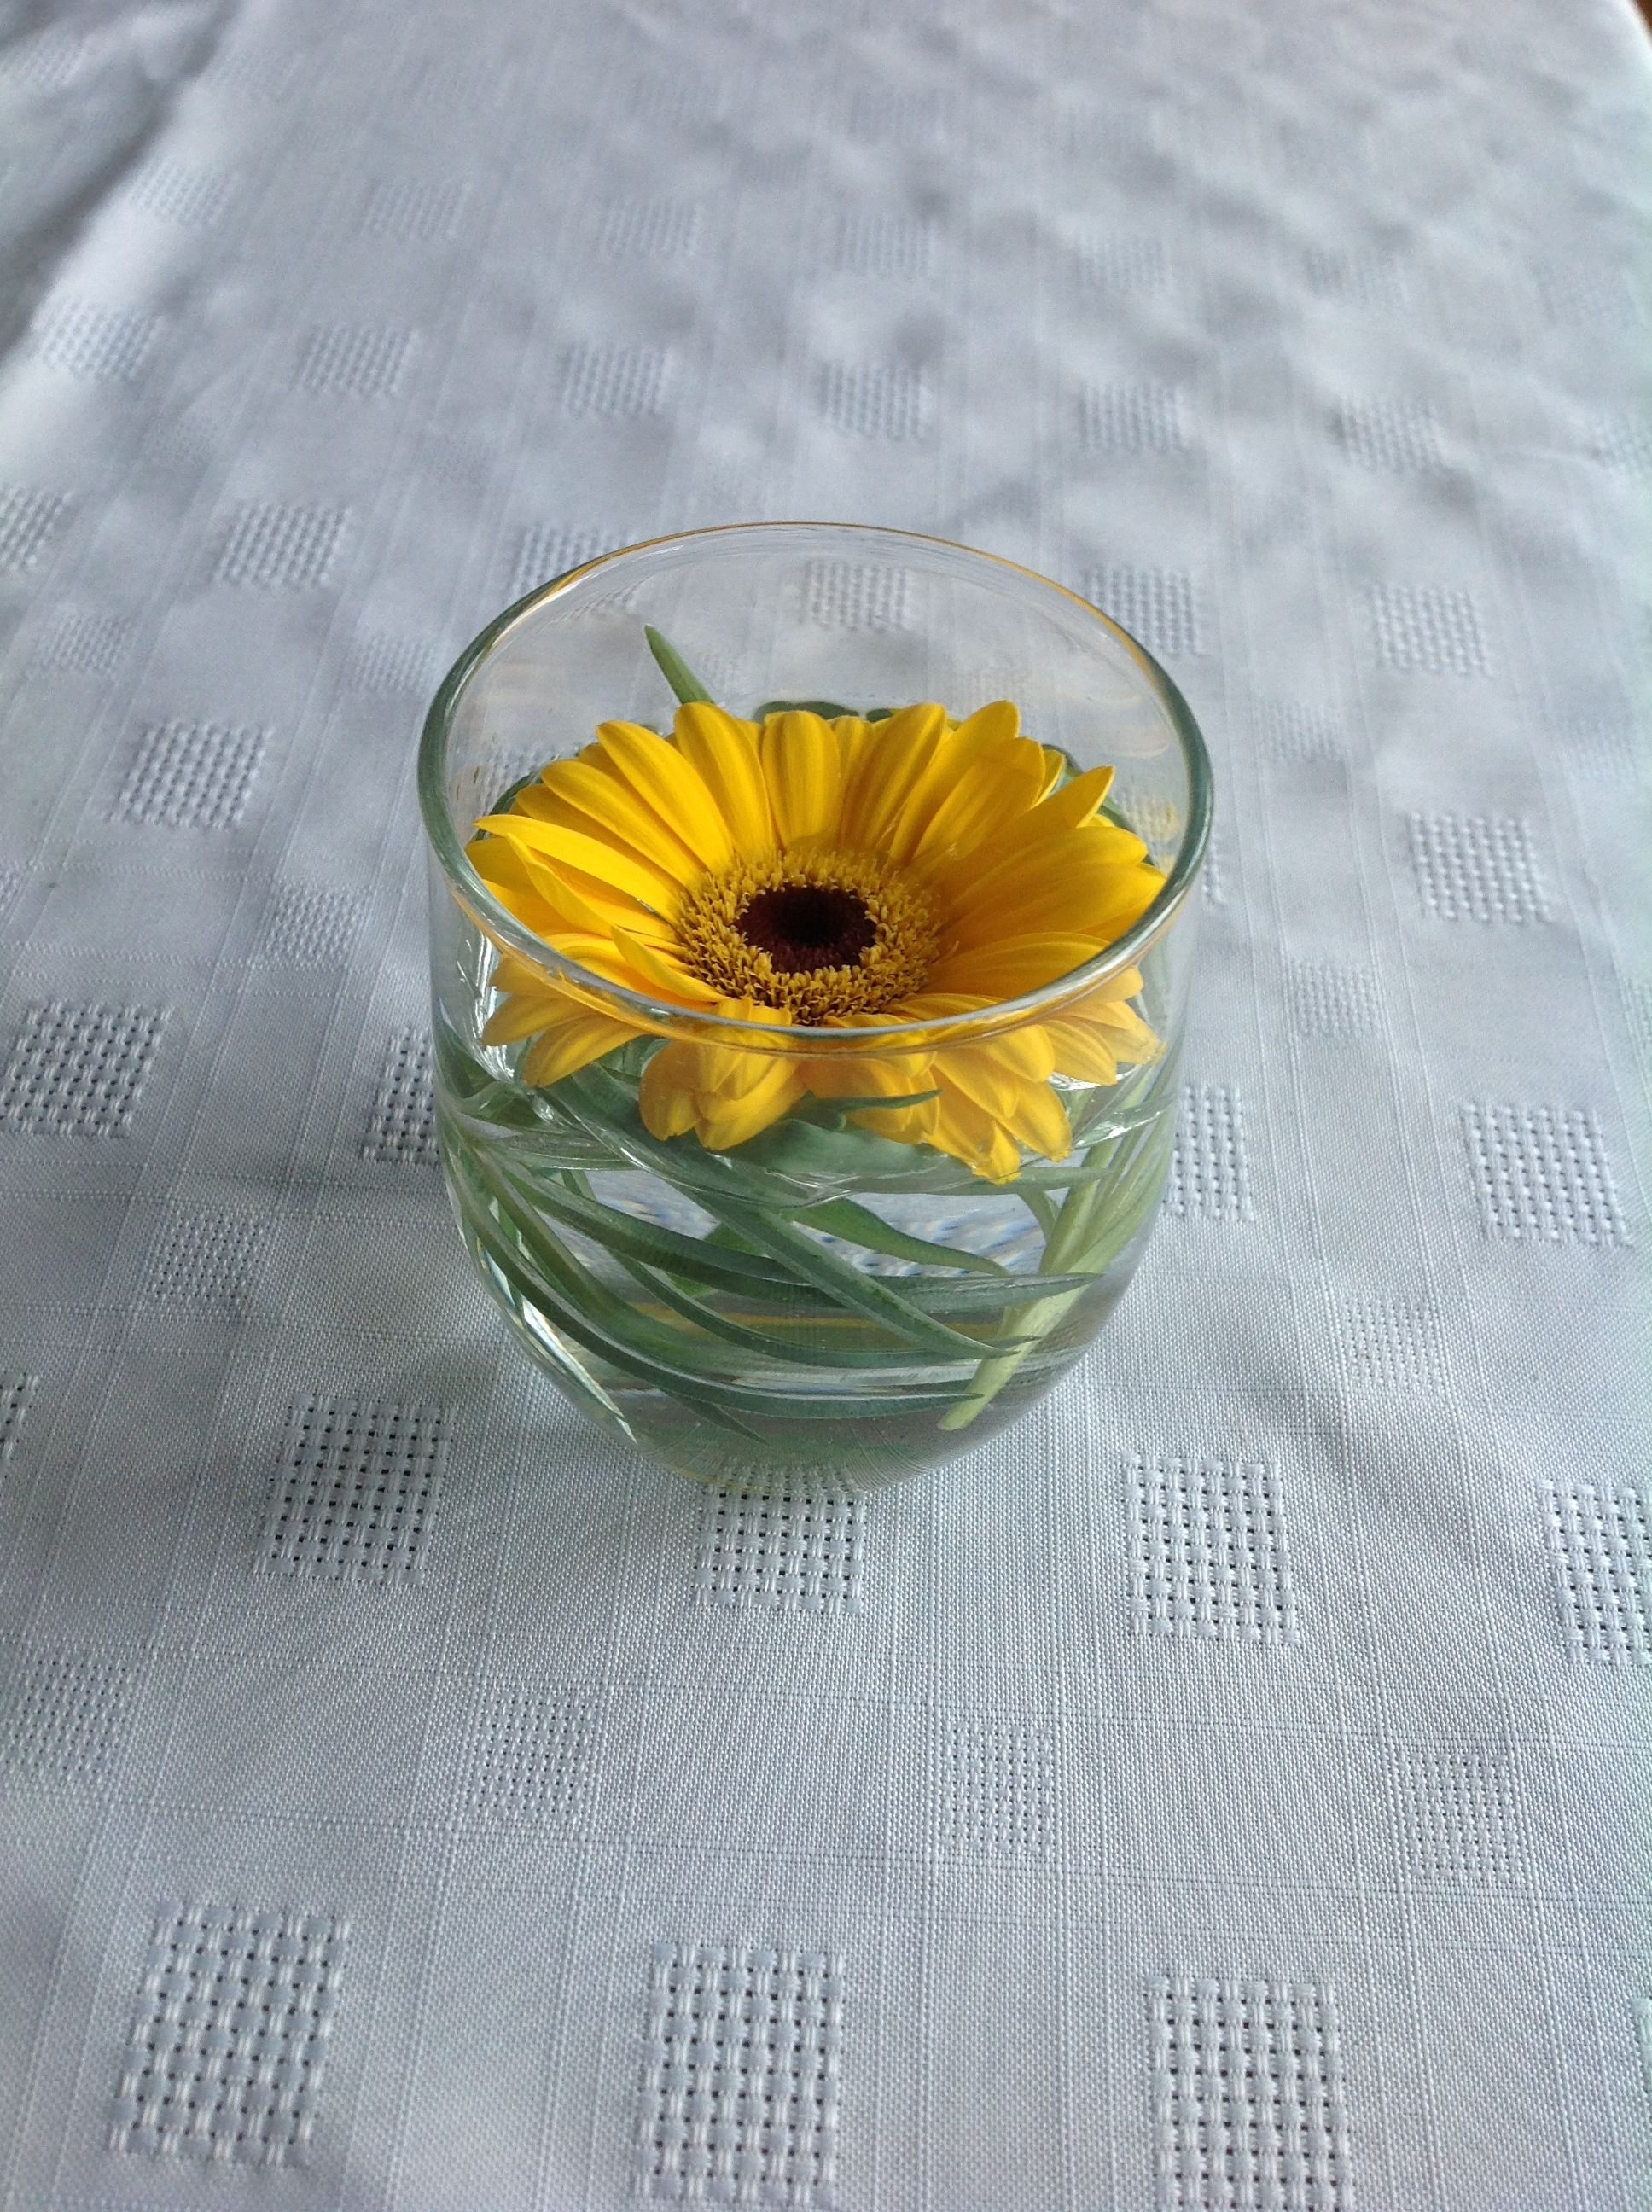 Cheap glass tumbler with fronds of greenery and a single flower an cheap glass tumbler with fronds of greenery and a single flower an effective table decoration izmirmasajfo